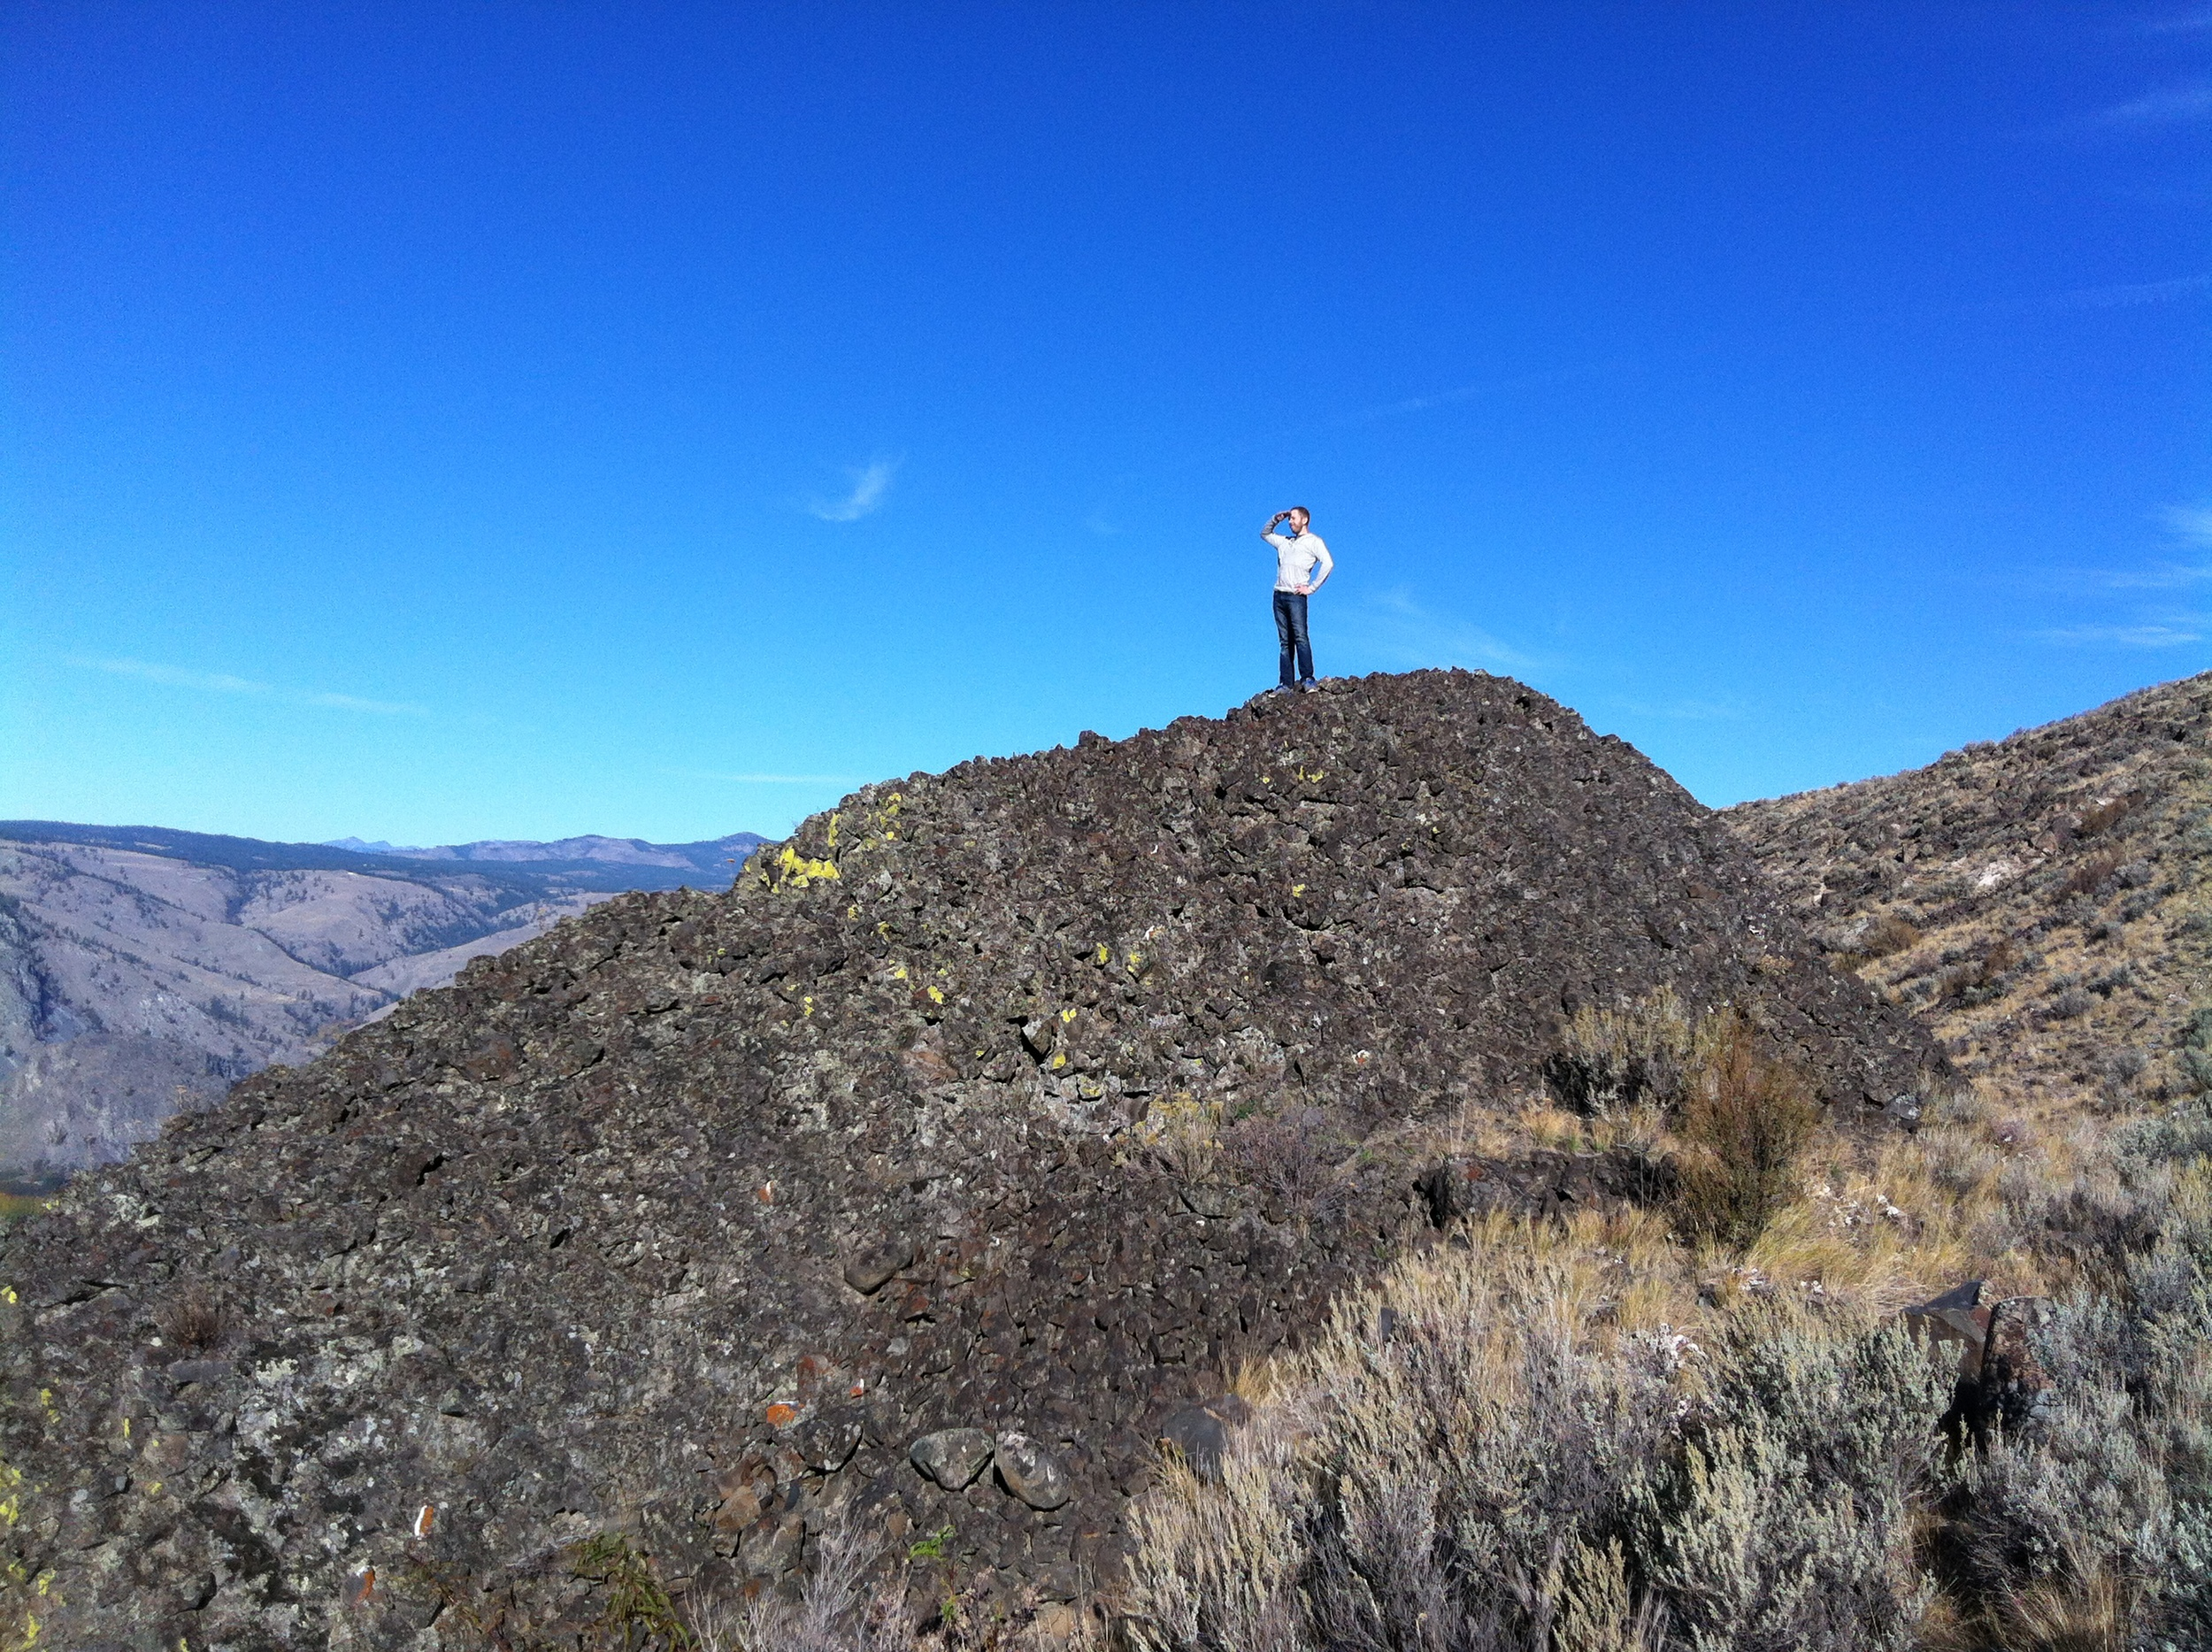 This basalt monolith anchors the Northwest corner of our land and looks to be about half its actual size from the end of the driveway up above. The hillside is so steep we had to zig-zag constantly to avoid slipping and sliding down.